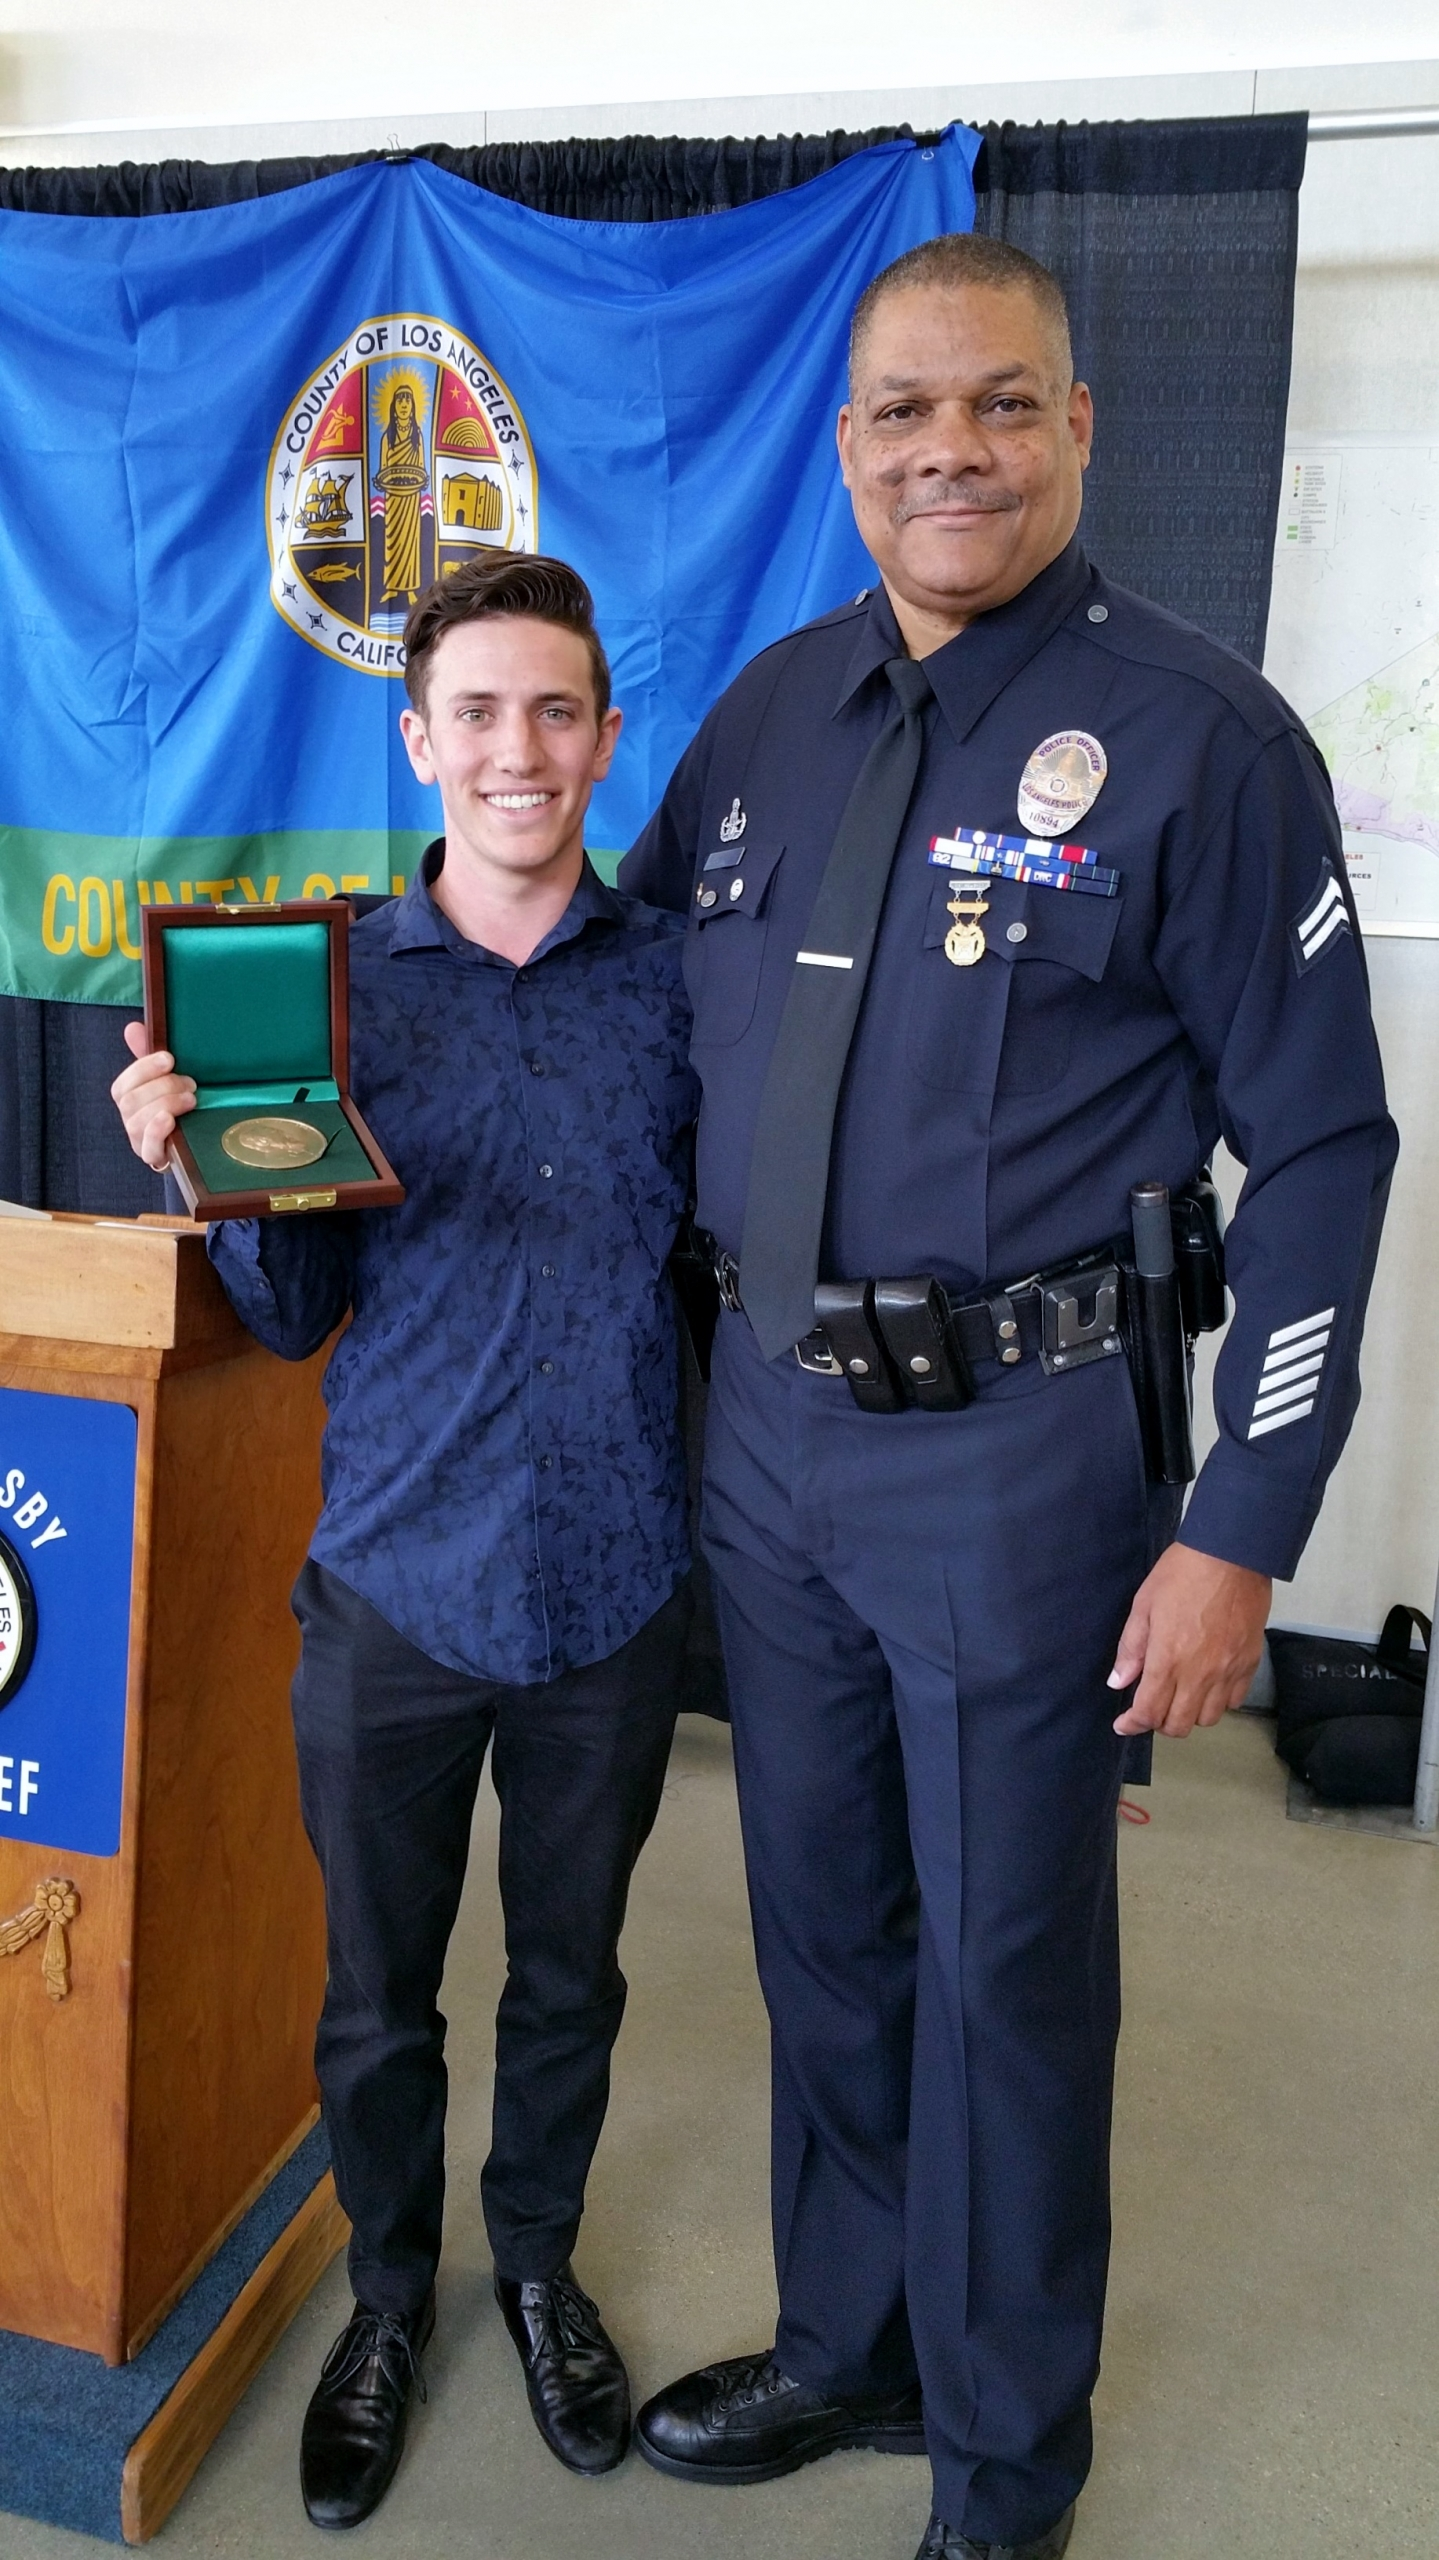 Carnegie Medal presentation to Justin Lee Greenwald